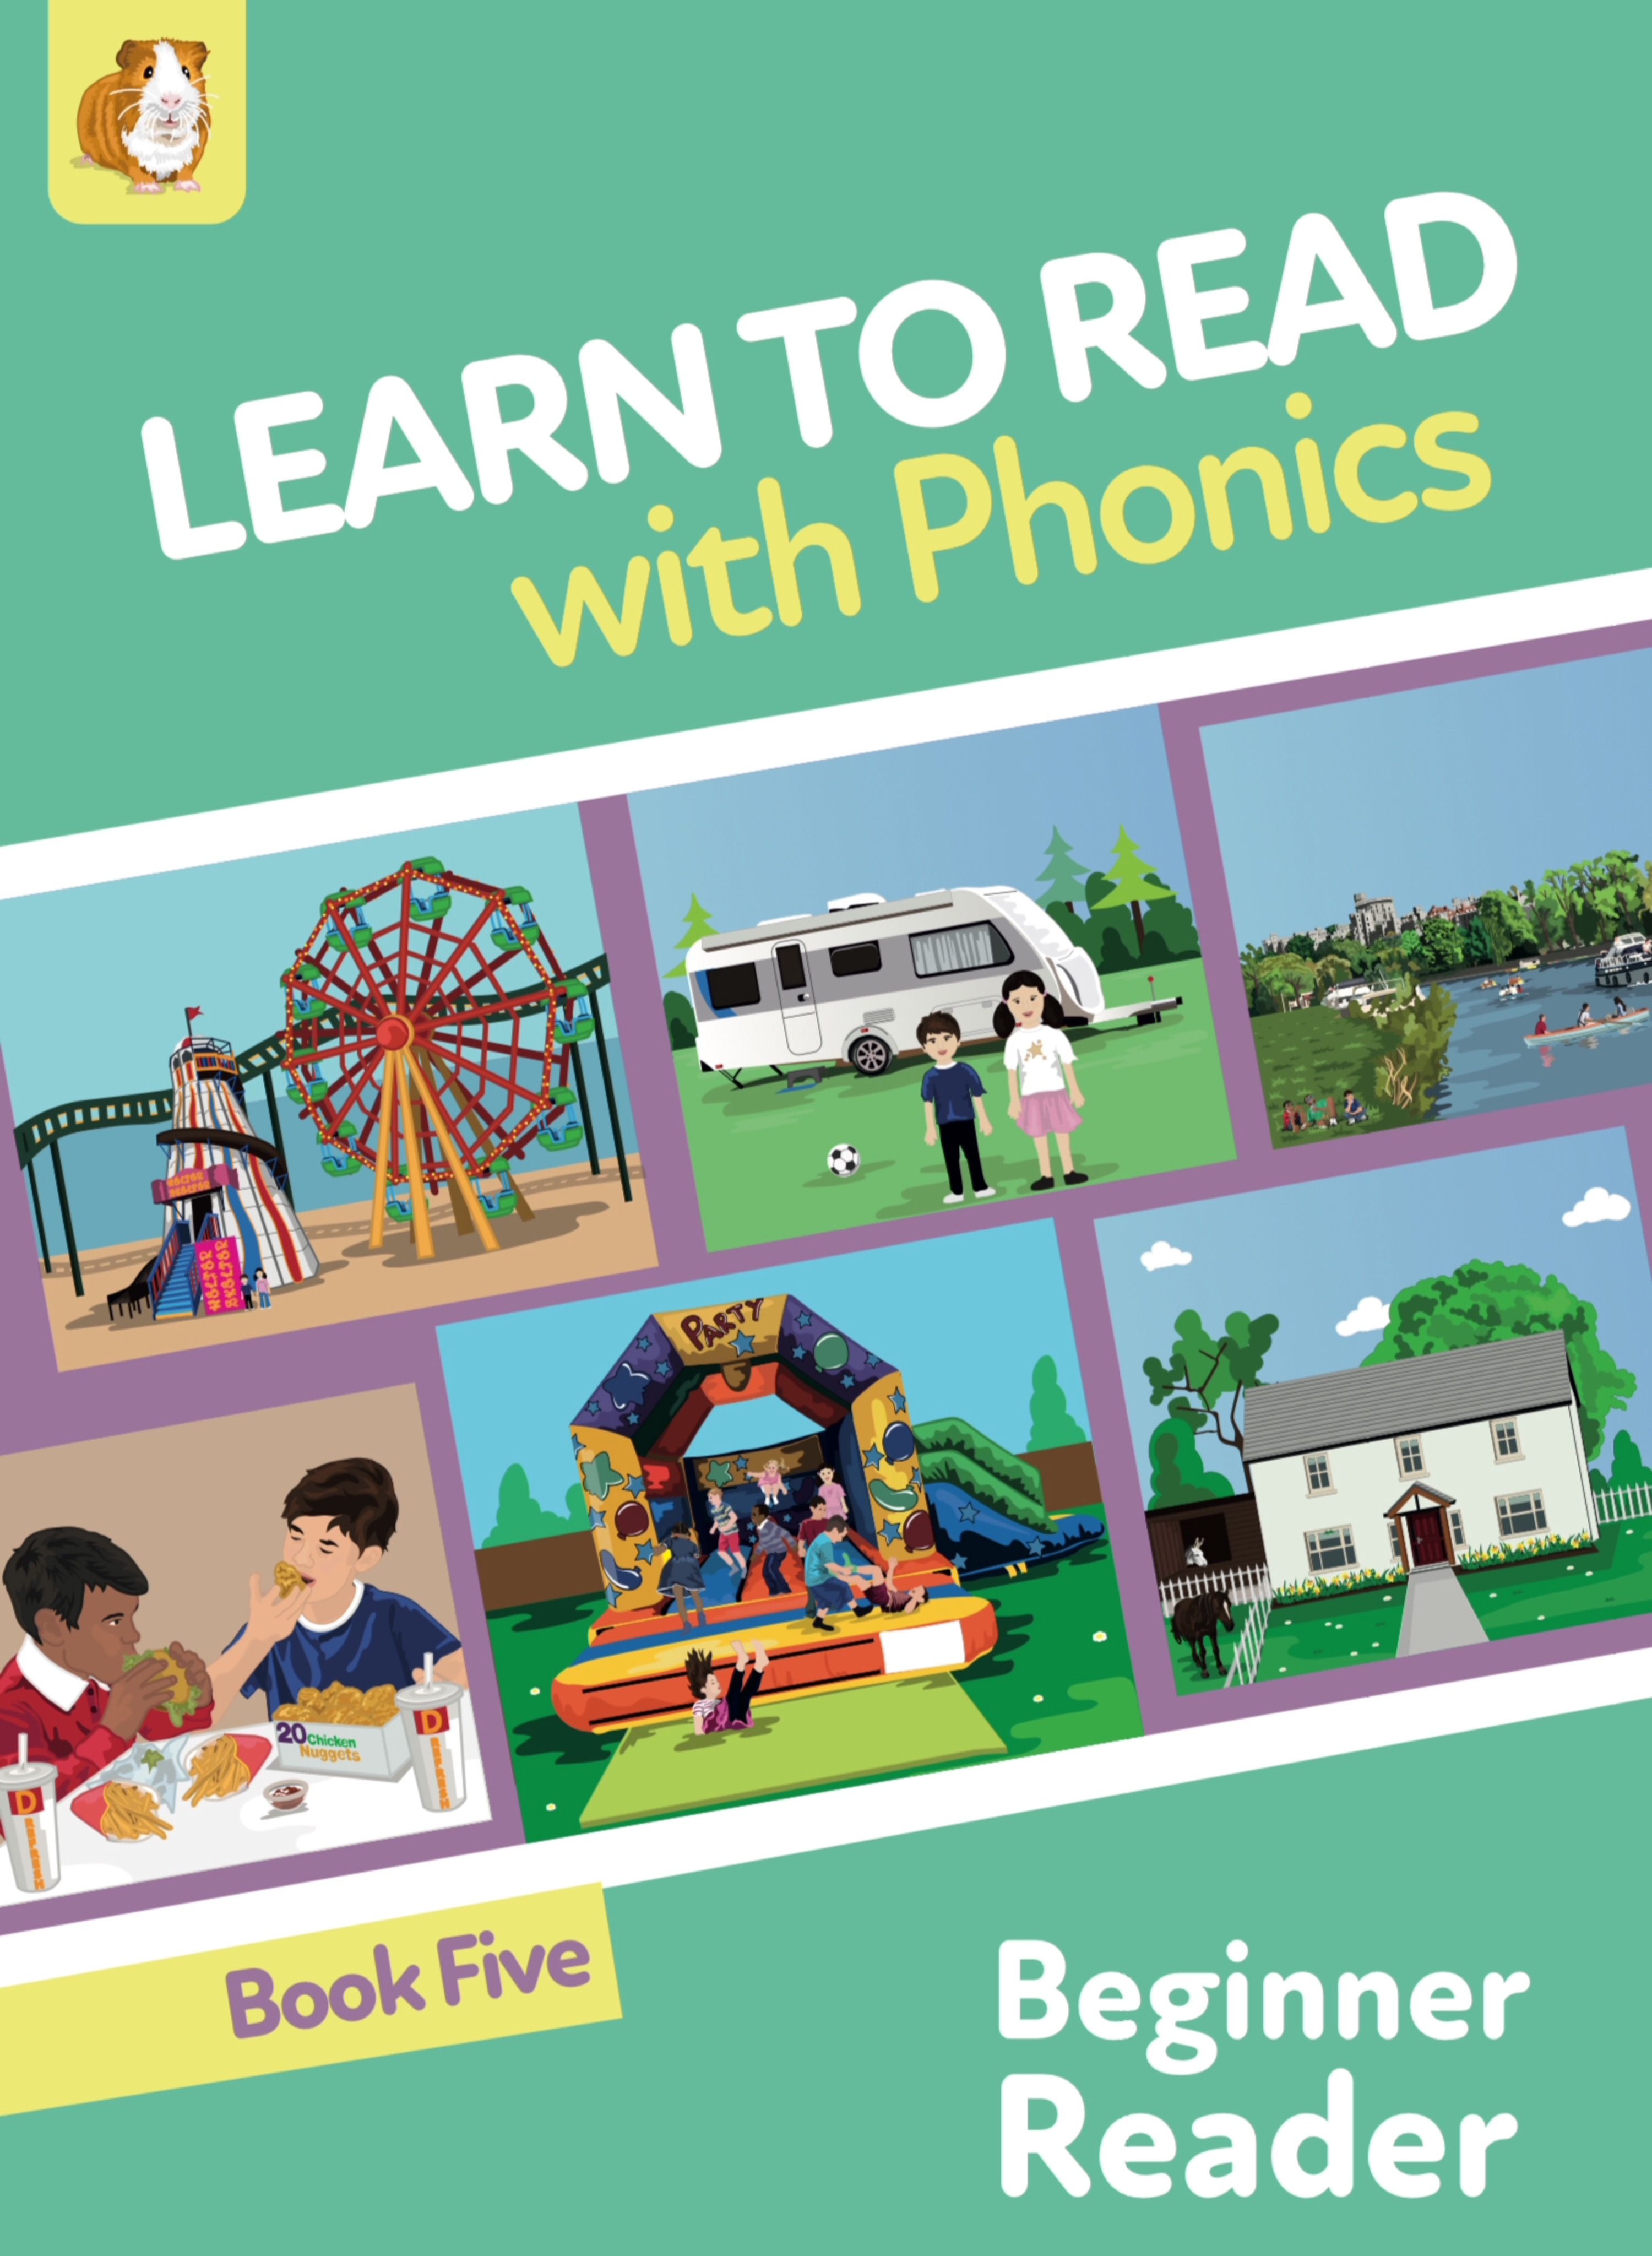 Learn To Read Rapidly With Phonics: Beginner Reader Book 5: Digital Download